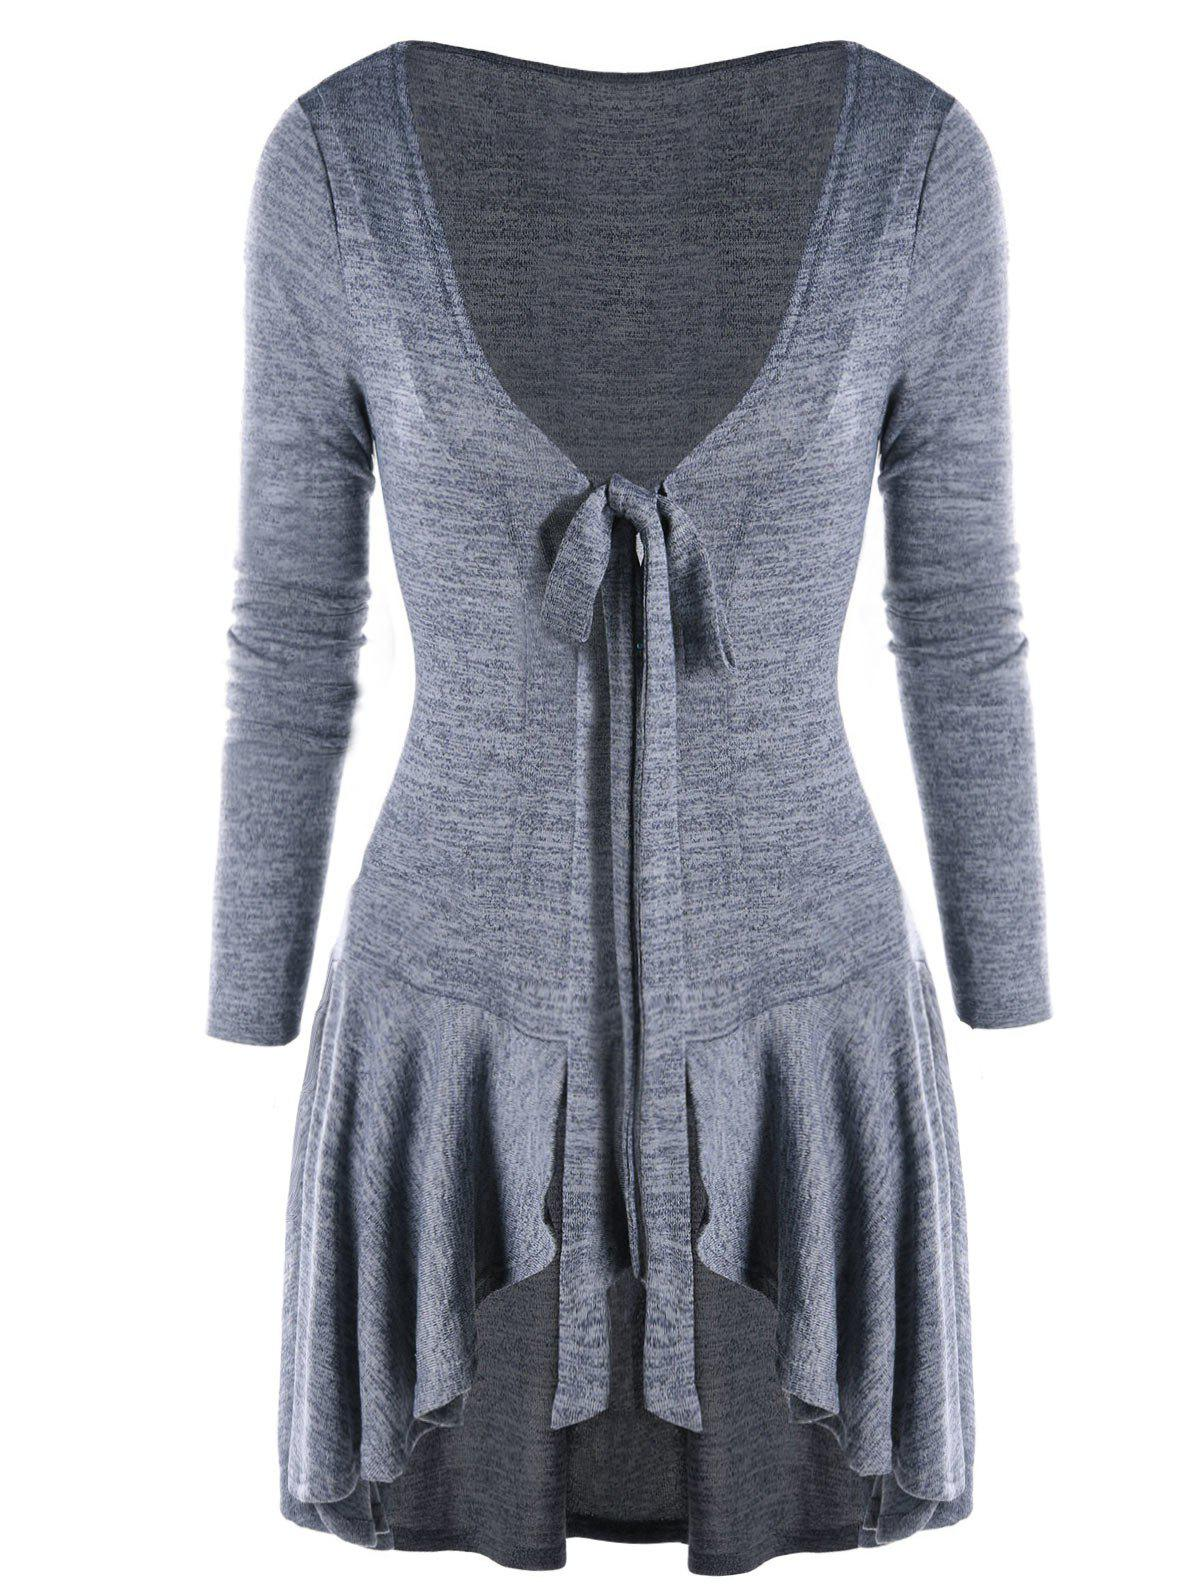 Bow Tie Neck Heathered High Low Cardigan - GRAY XL